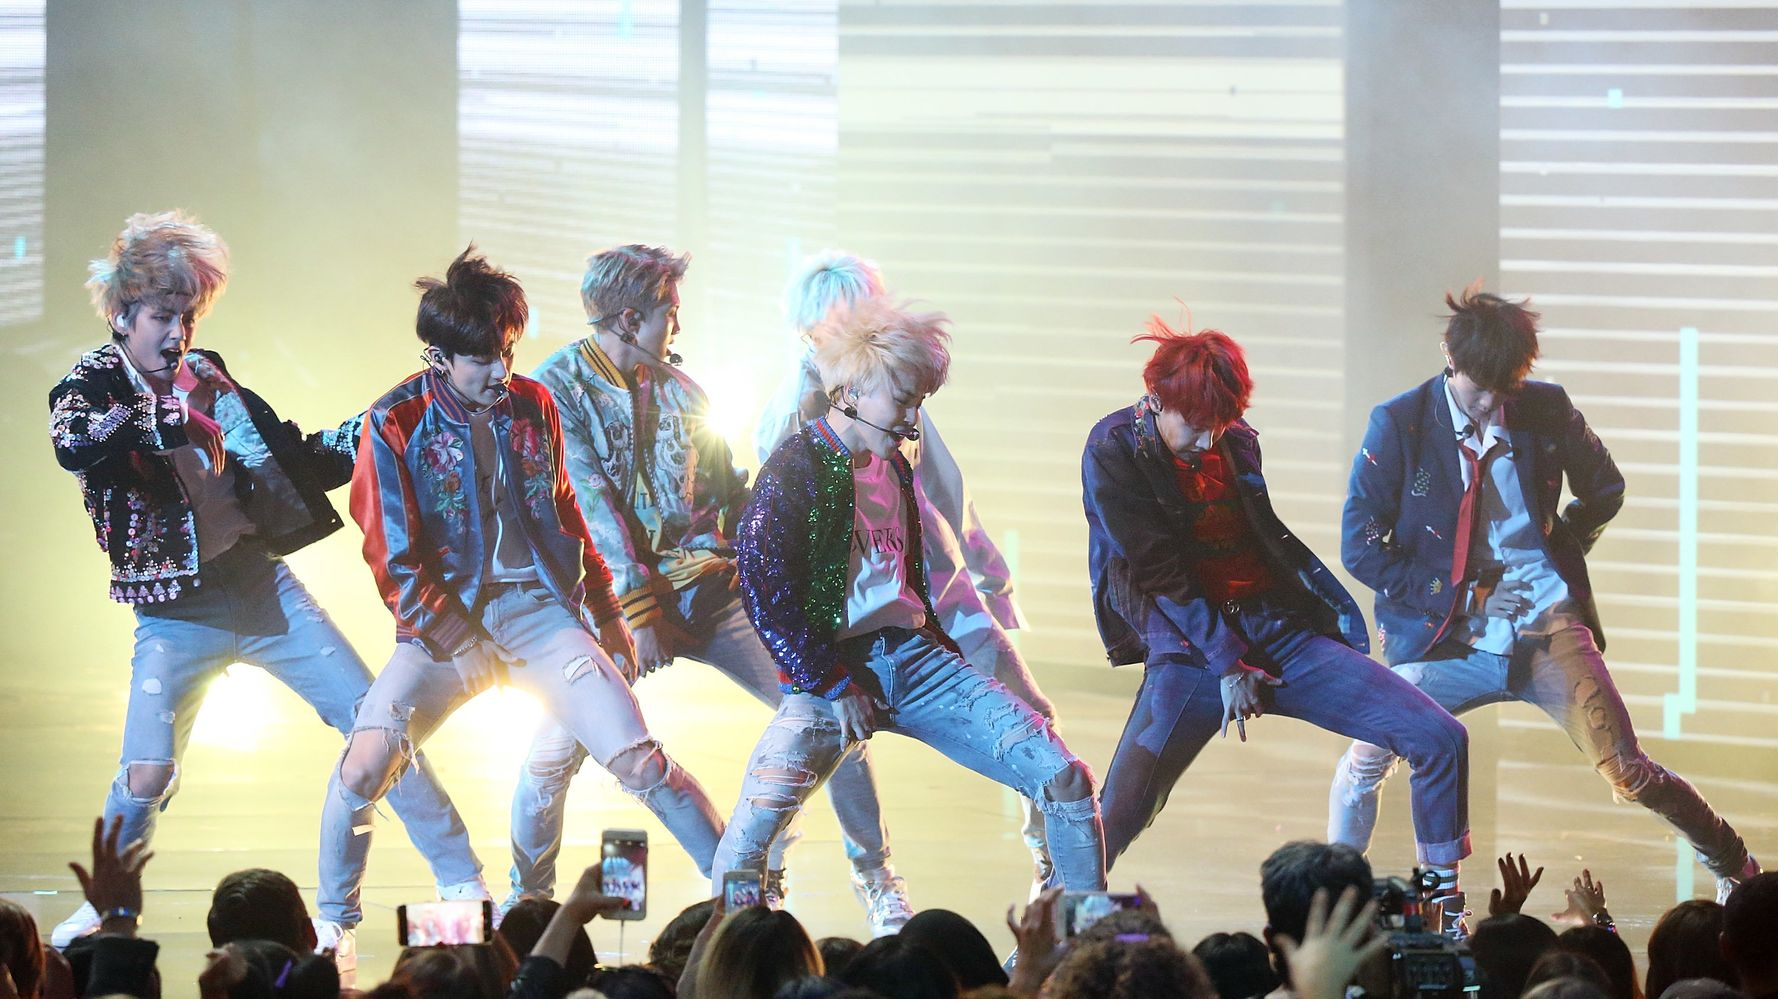 People Are Freaking Out Over K-Pop Band BTS's Performance At